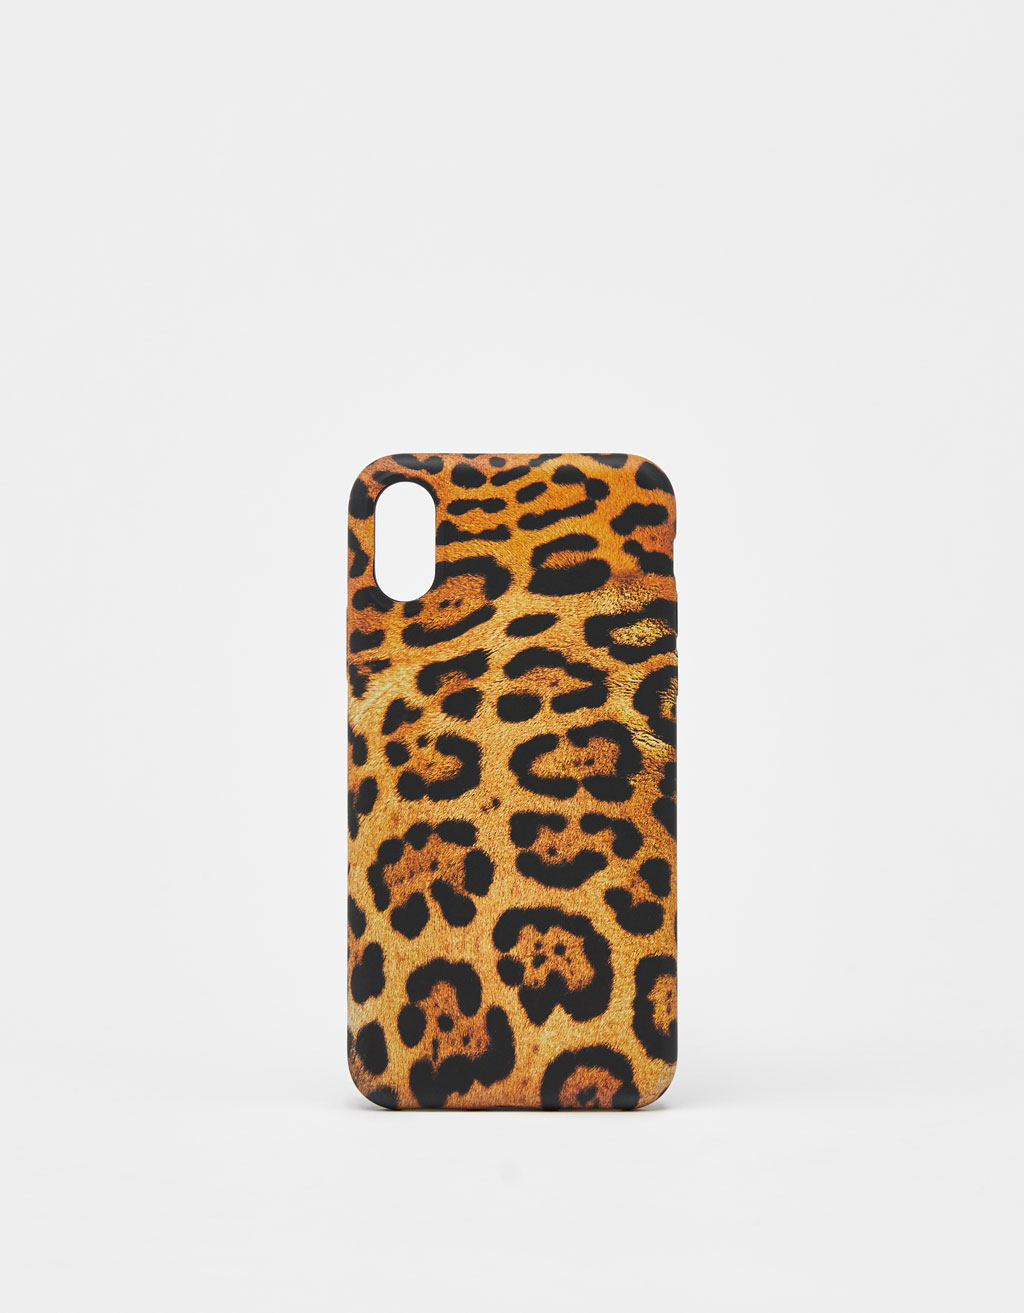 Carcasa de leopardo iPhone X/XS